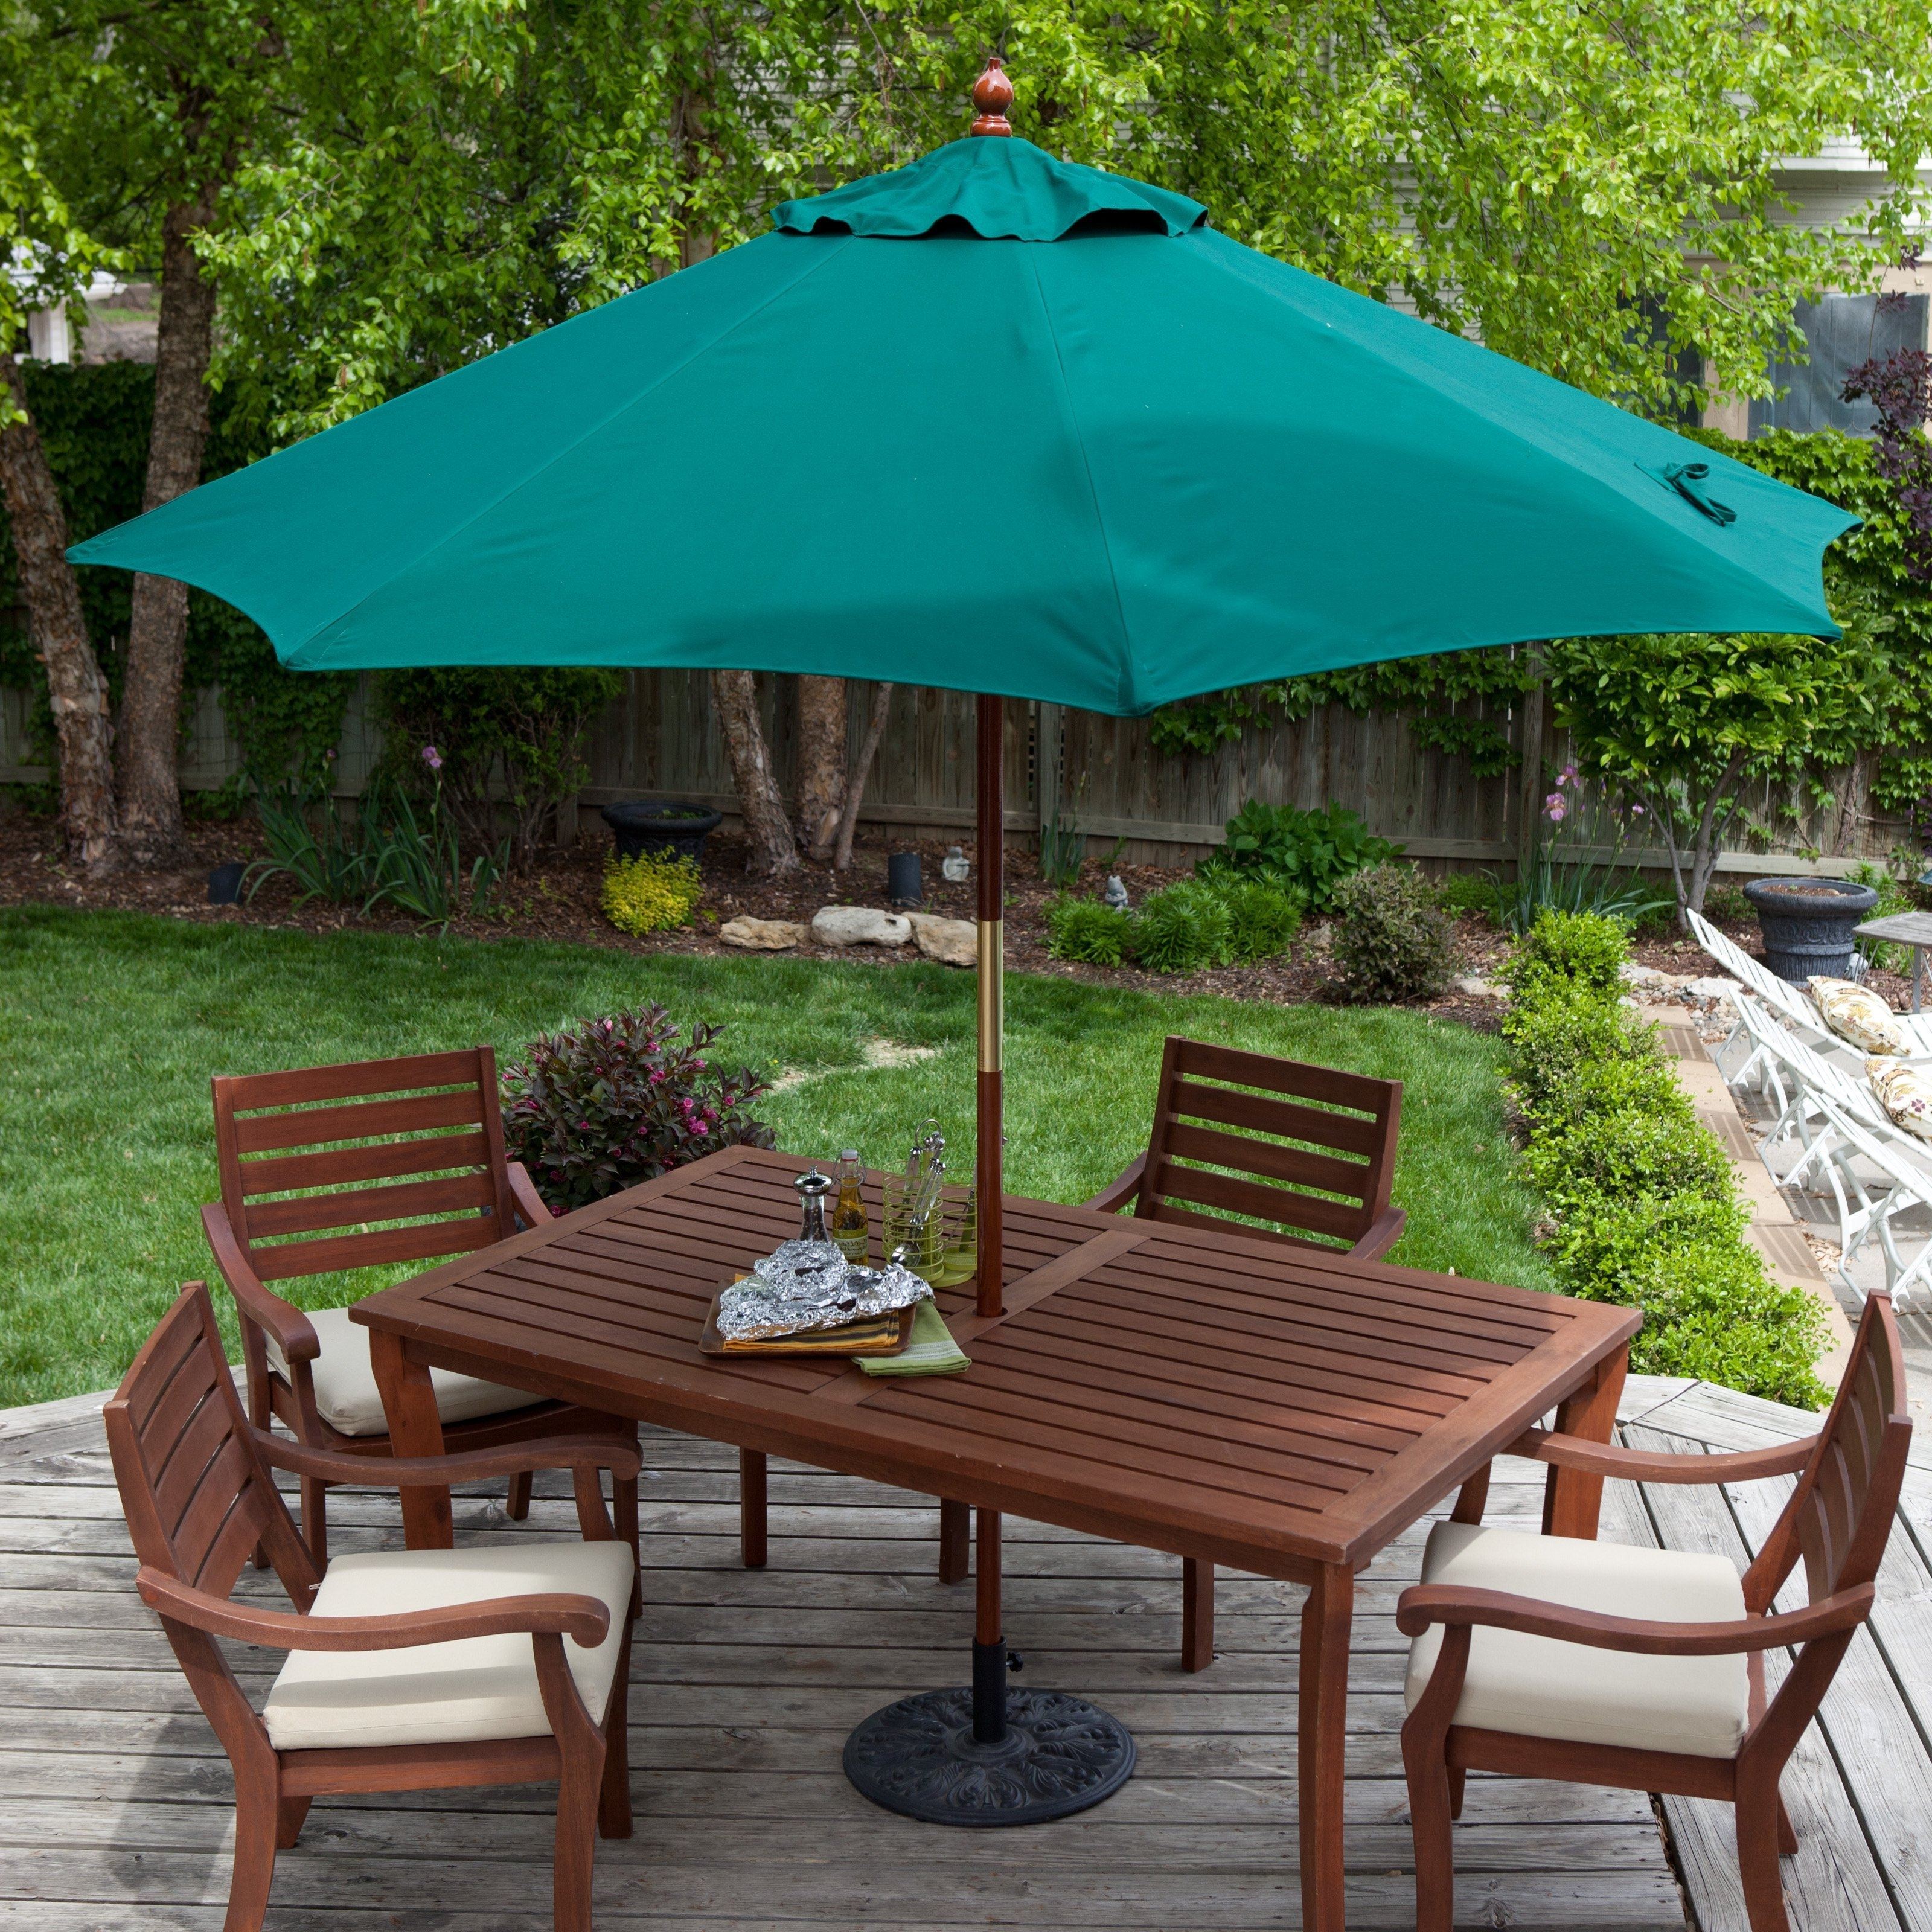 Elegant Patio Table With Umbrella Hole F65X In Fabulous Home Design Throughout Most Current Patio Tables With Umbrella Hole (Gallery 16 of 20)